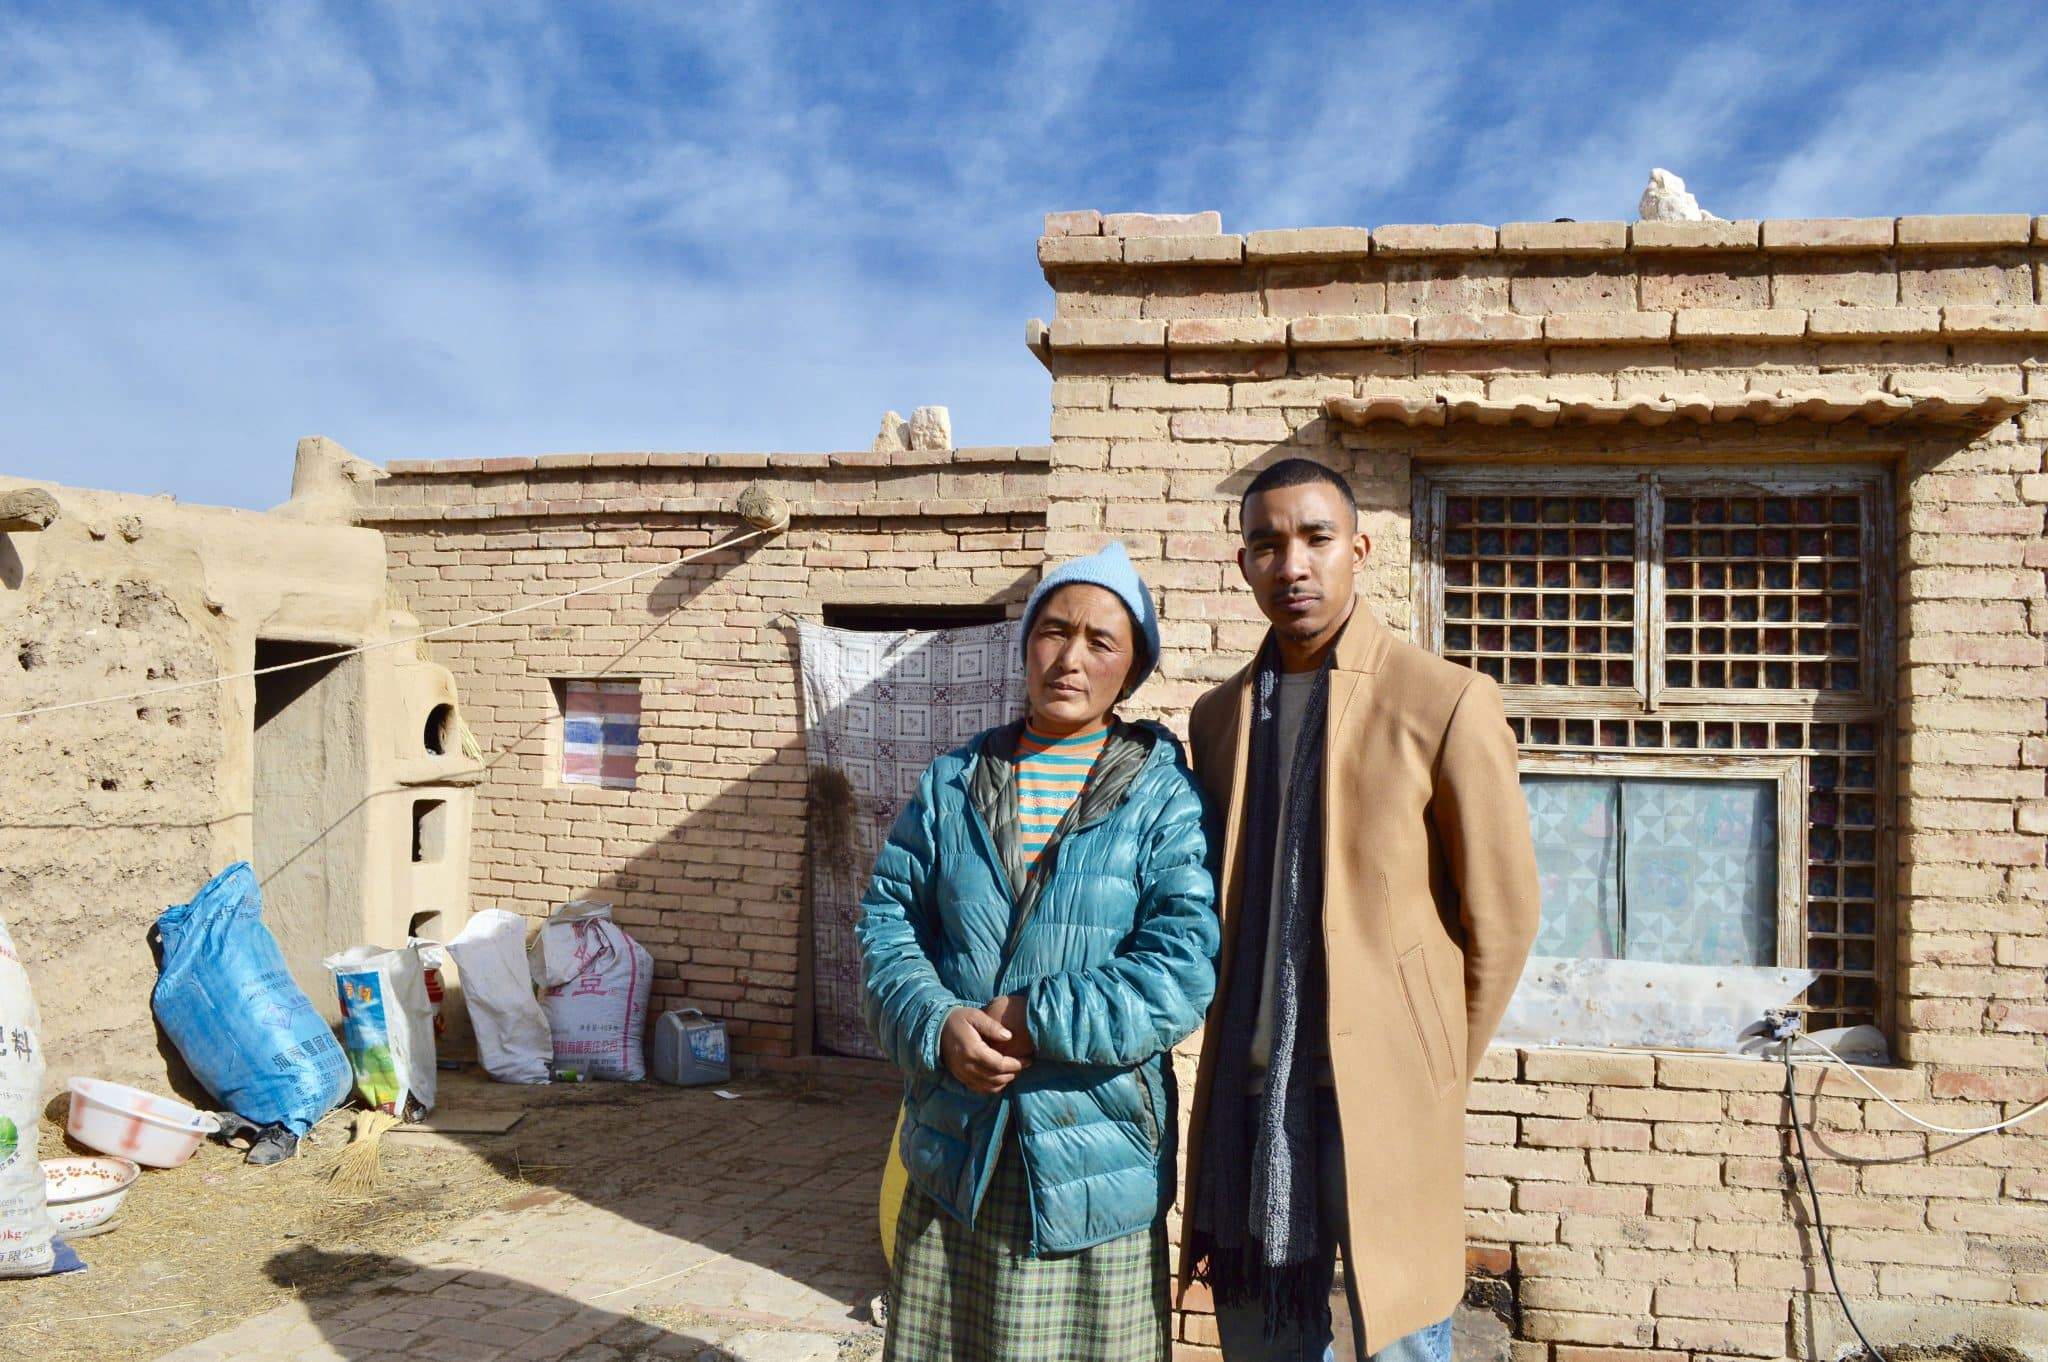 Tyreek with a woman in Central Asia